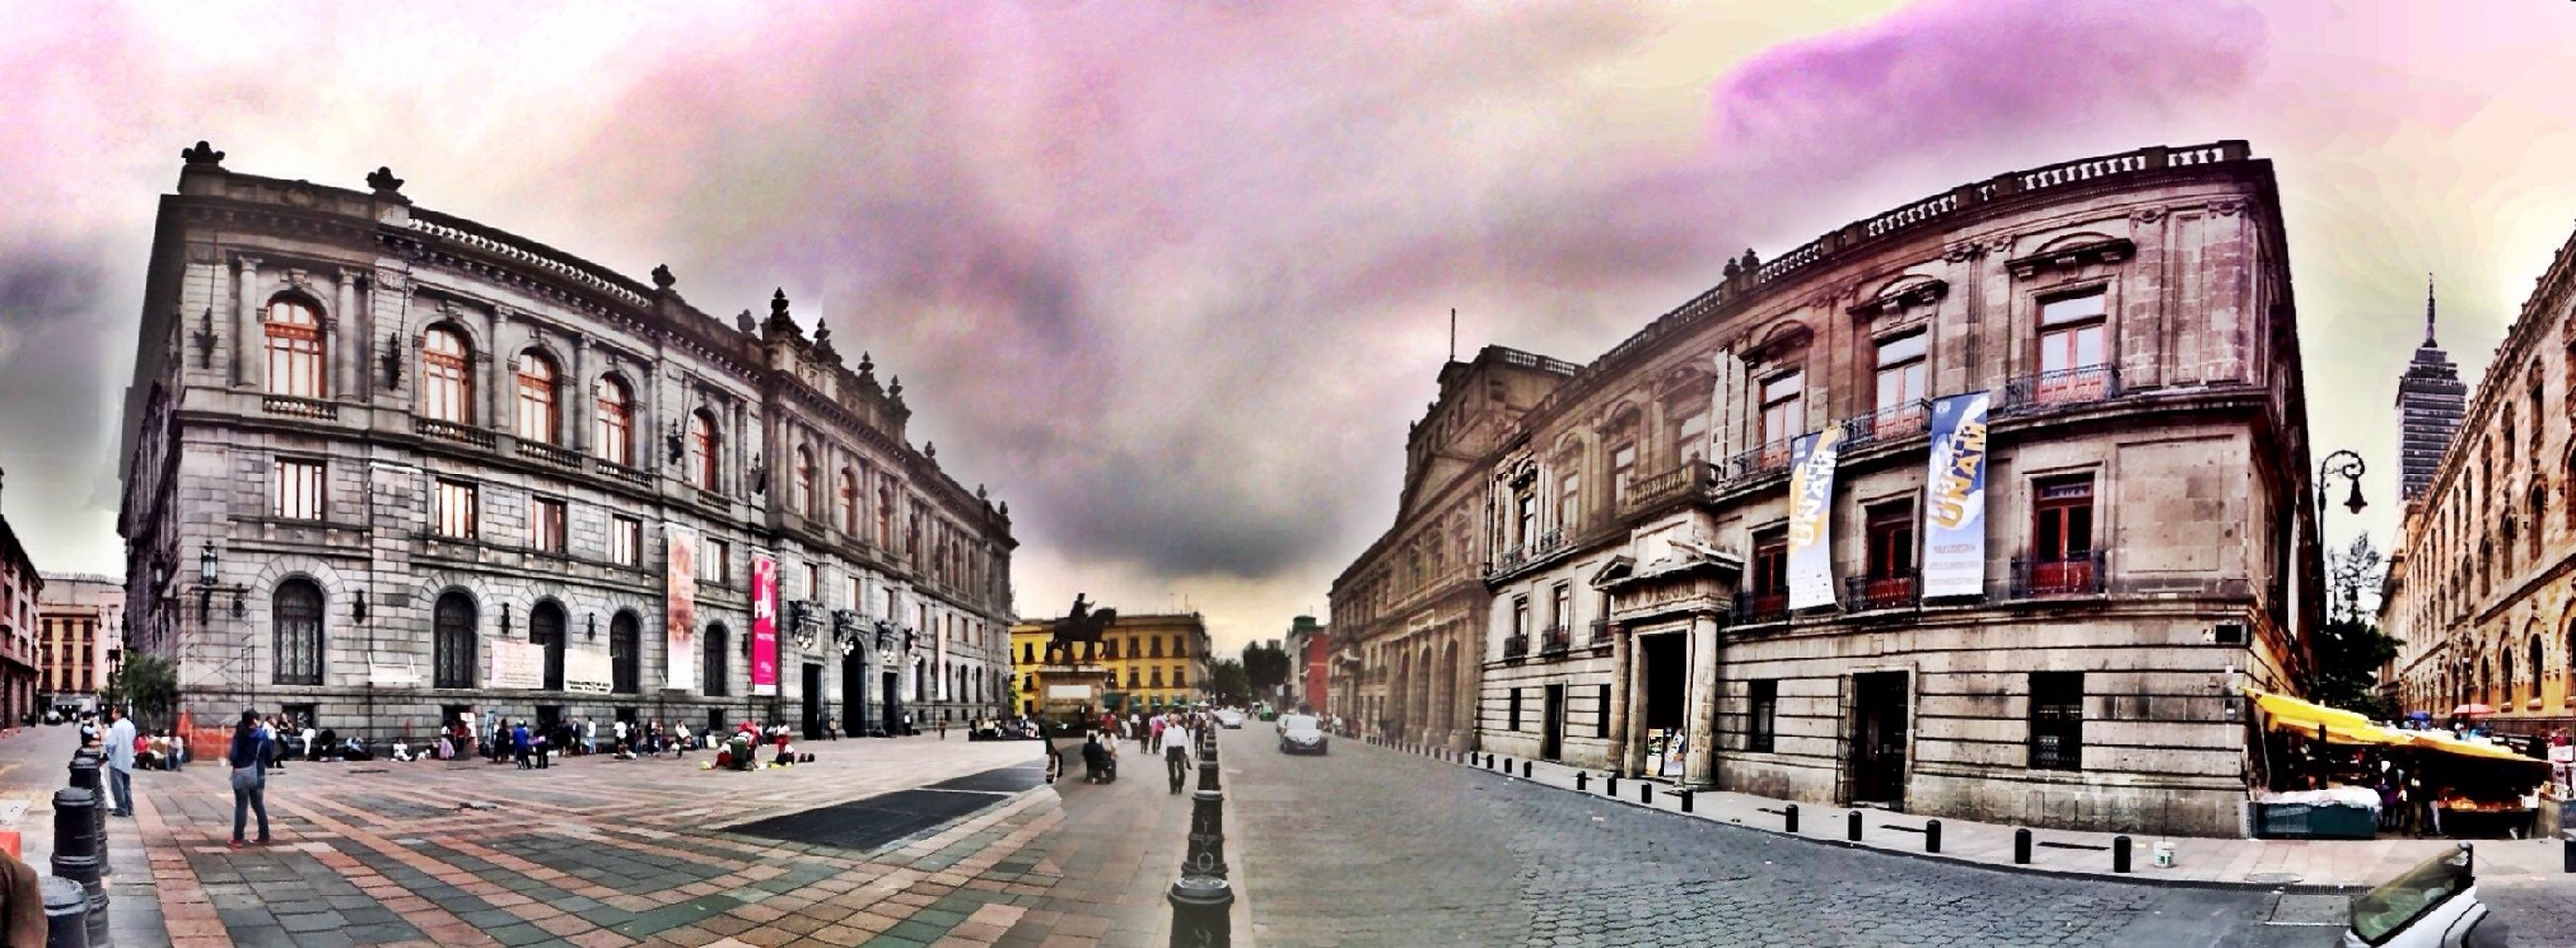 building exterior, architecture, built structure, sky, street, the way forward, cloud - sky, diminishing perspective, cloudy, city, building, road, weather, incidental people, transportation, overcast, vanishing point, car, residential structure, cloud